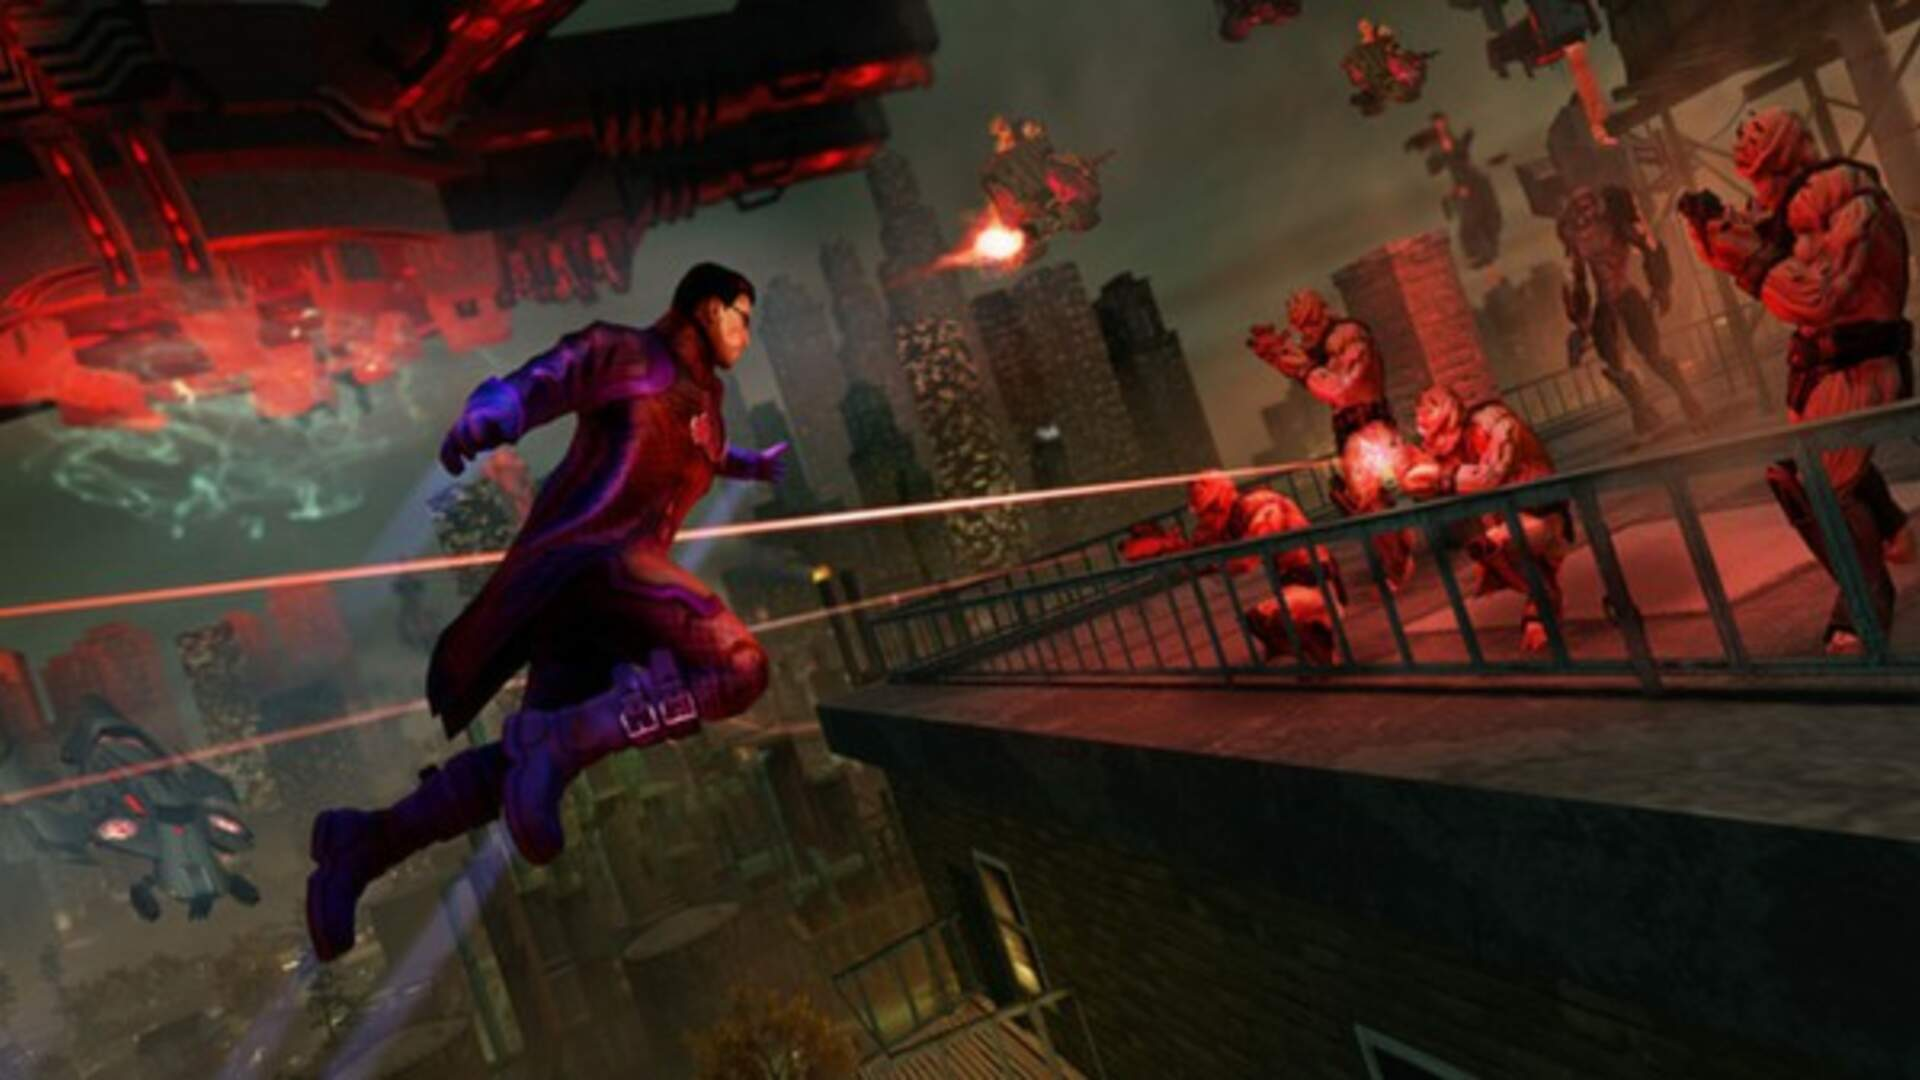 Saints Row 4 Cheats For Xbox One, PS4, PC, Xbox 360 and PS3